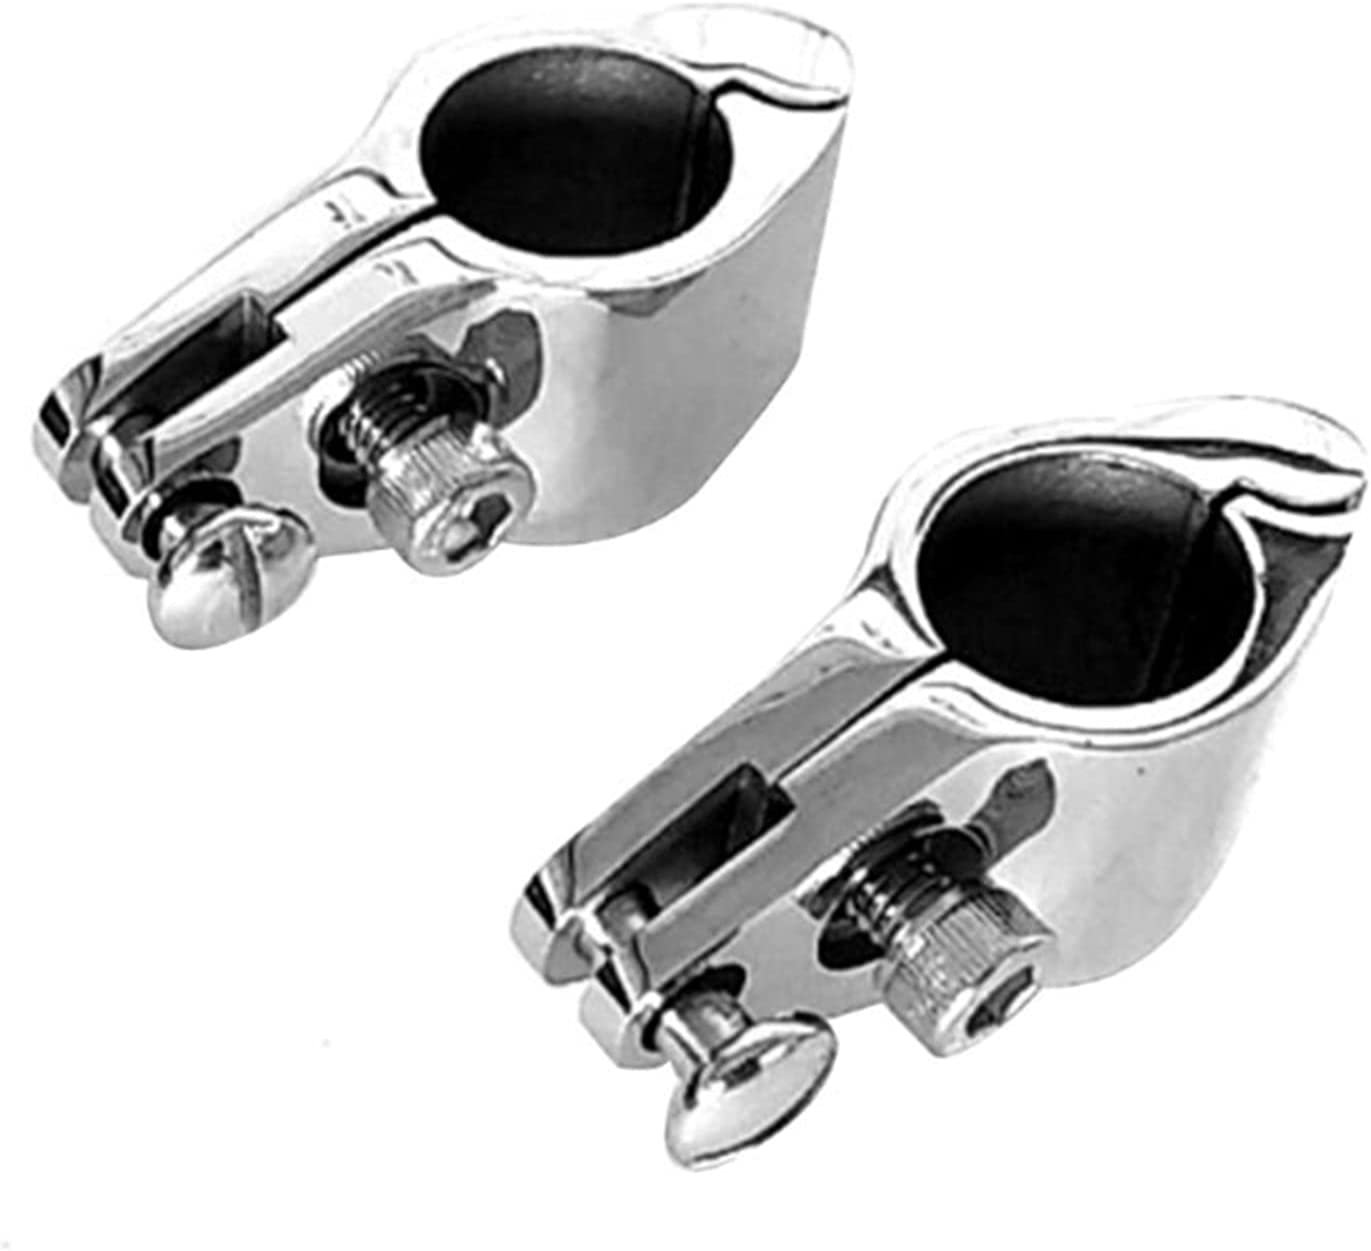 LJWXX Marine Max 82% OFF Hardware 22mm 25mm Stainless 316 Steel Boat Fitting Free shipping anywhere in the nation